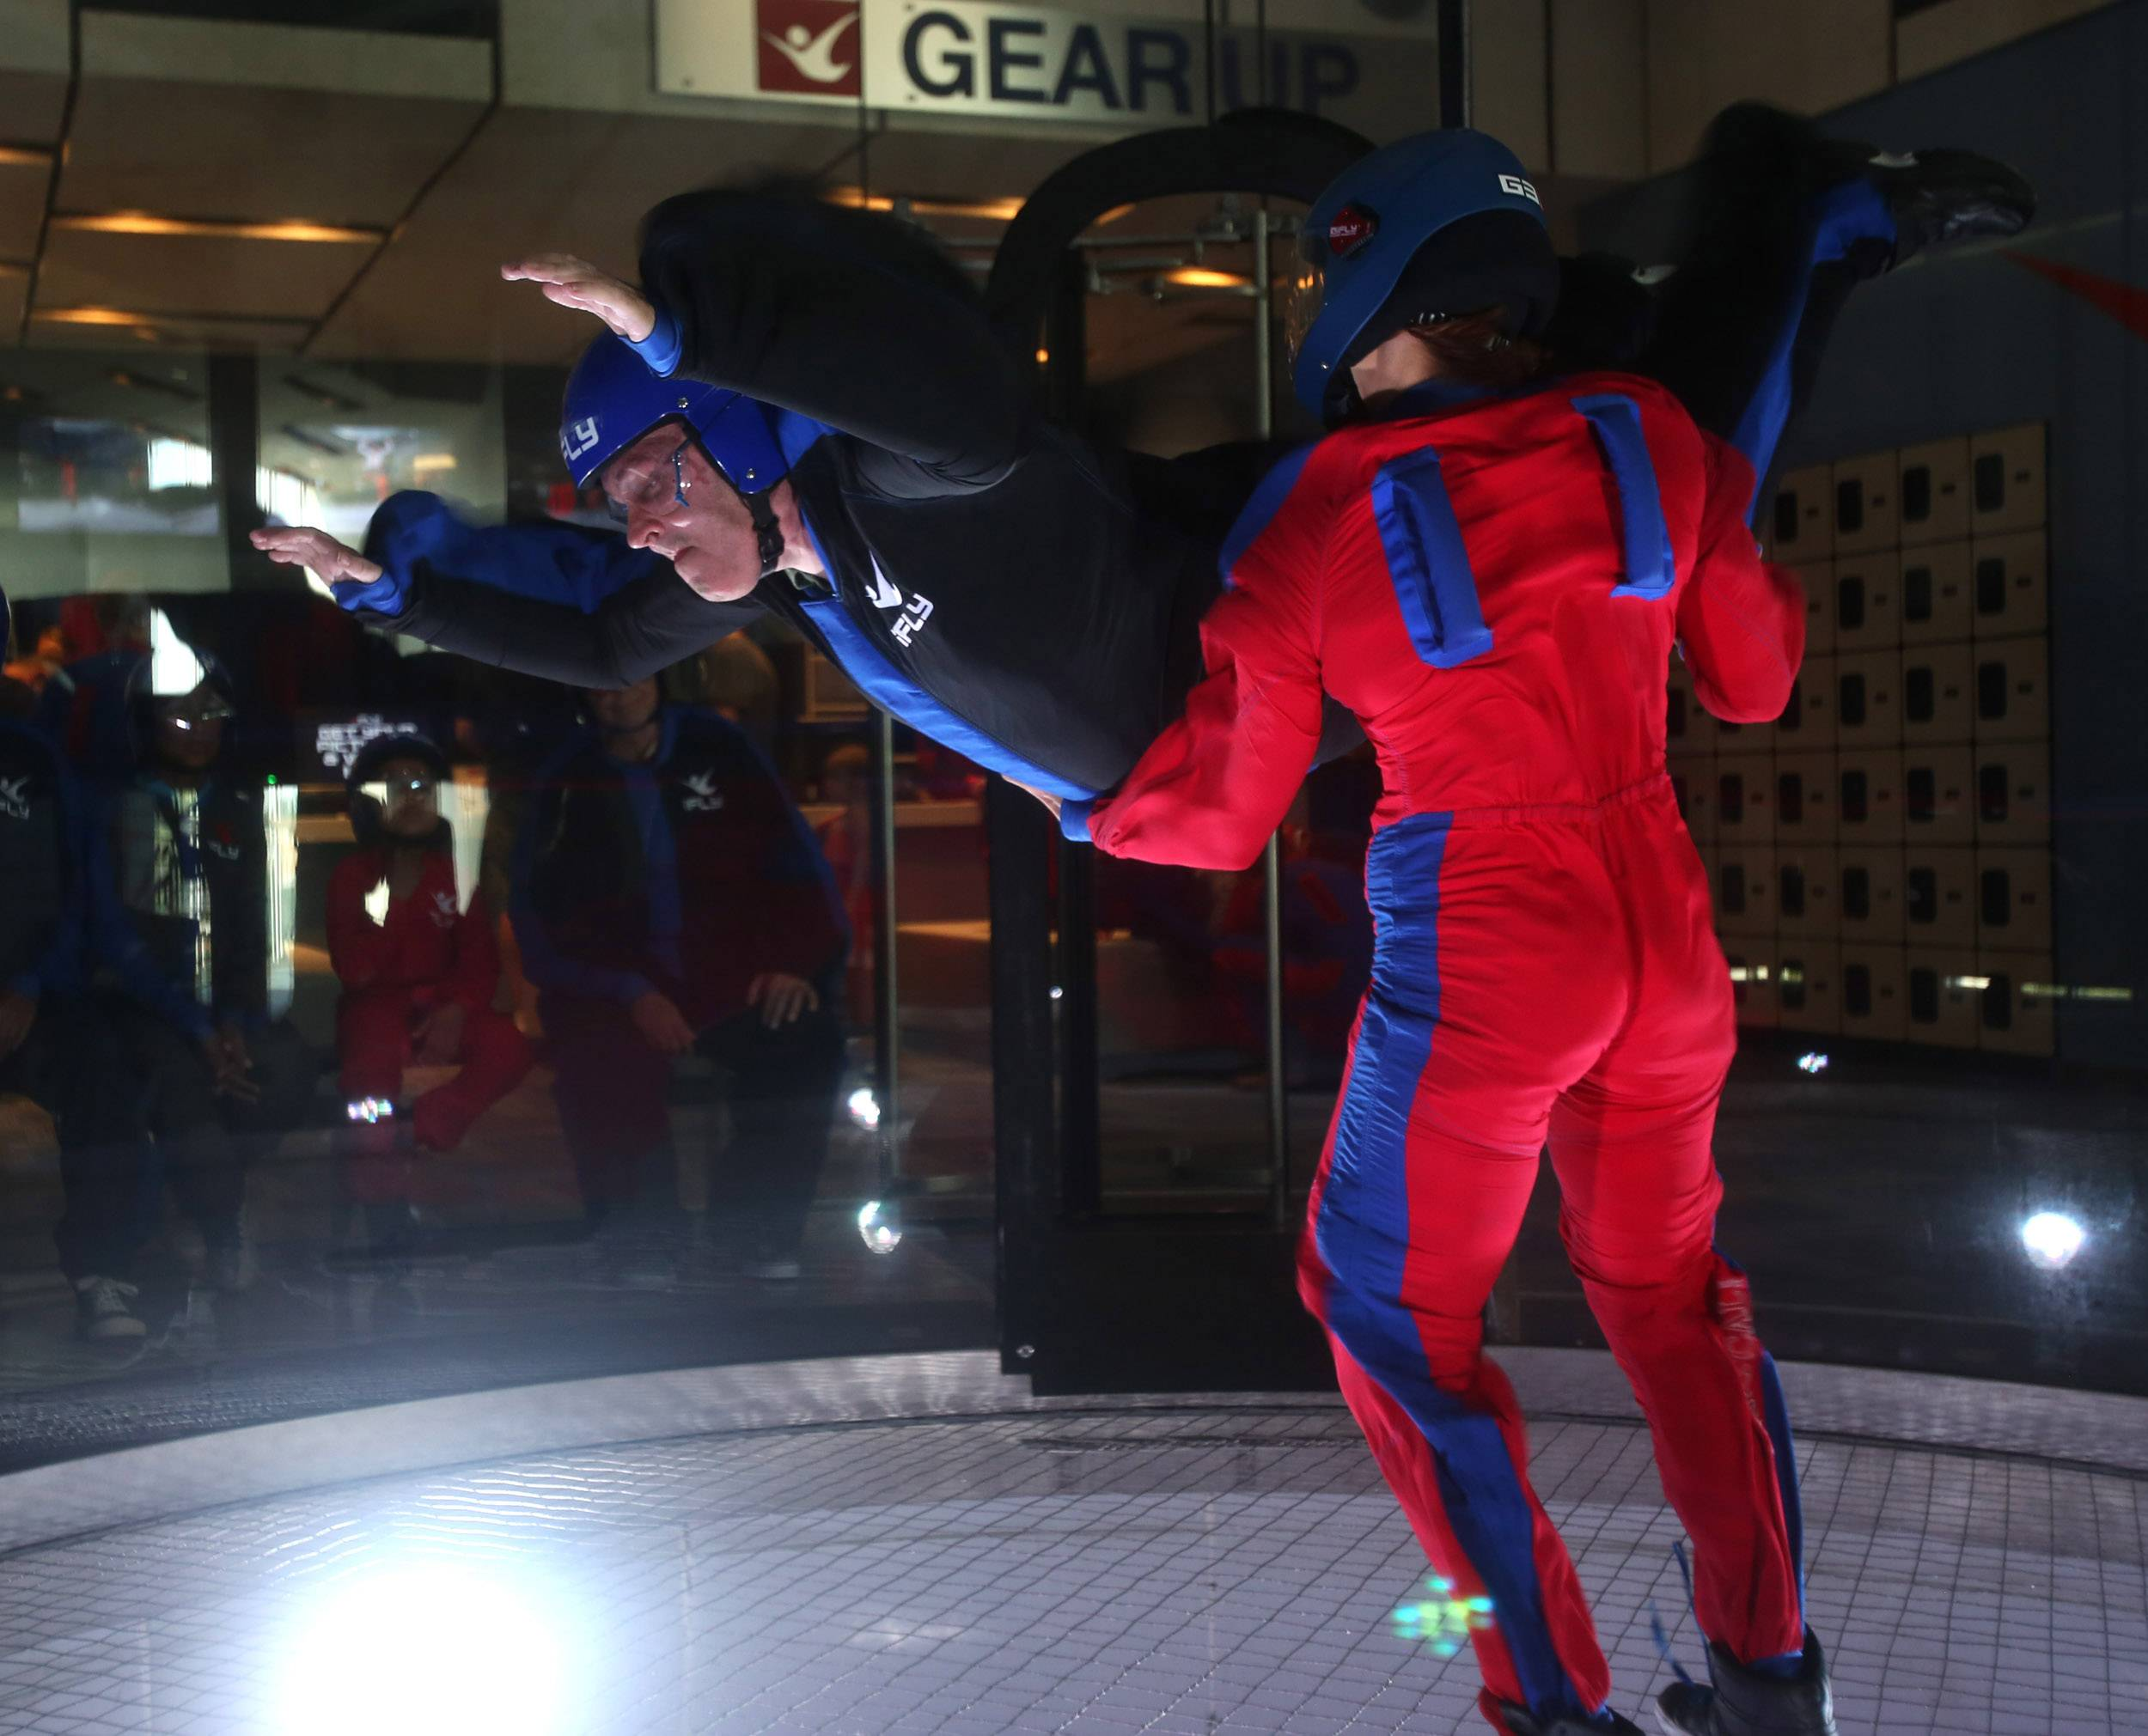 Otto Becker, 67, of Aurora is blind but able to experience the rush of indoor sky diving at iFly in Naperville, thanks to instructor Kristin Miller.